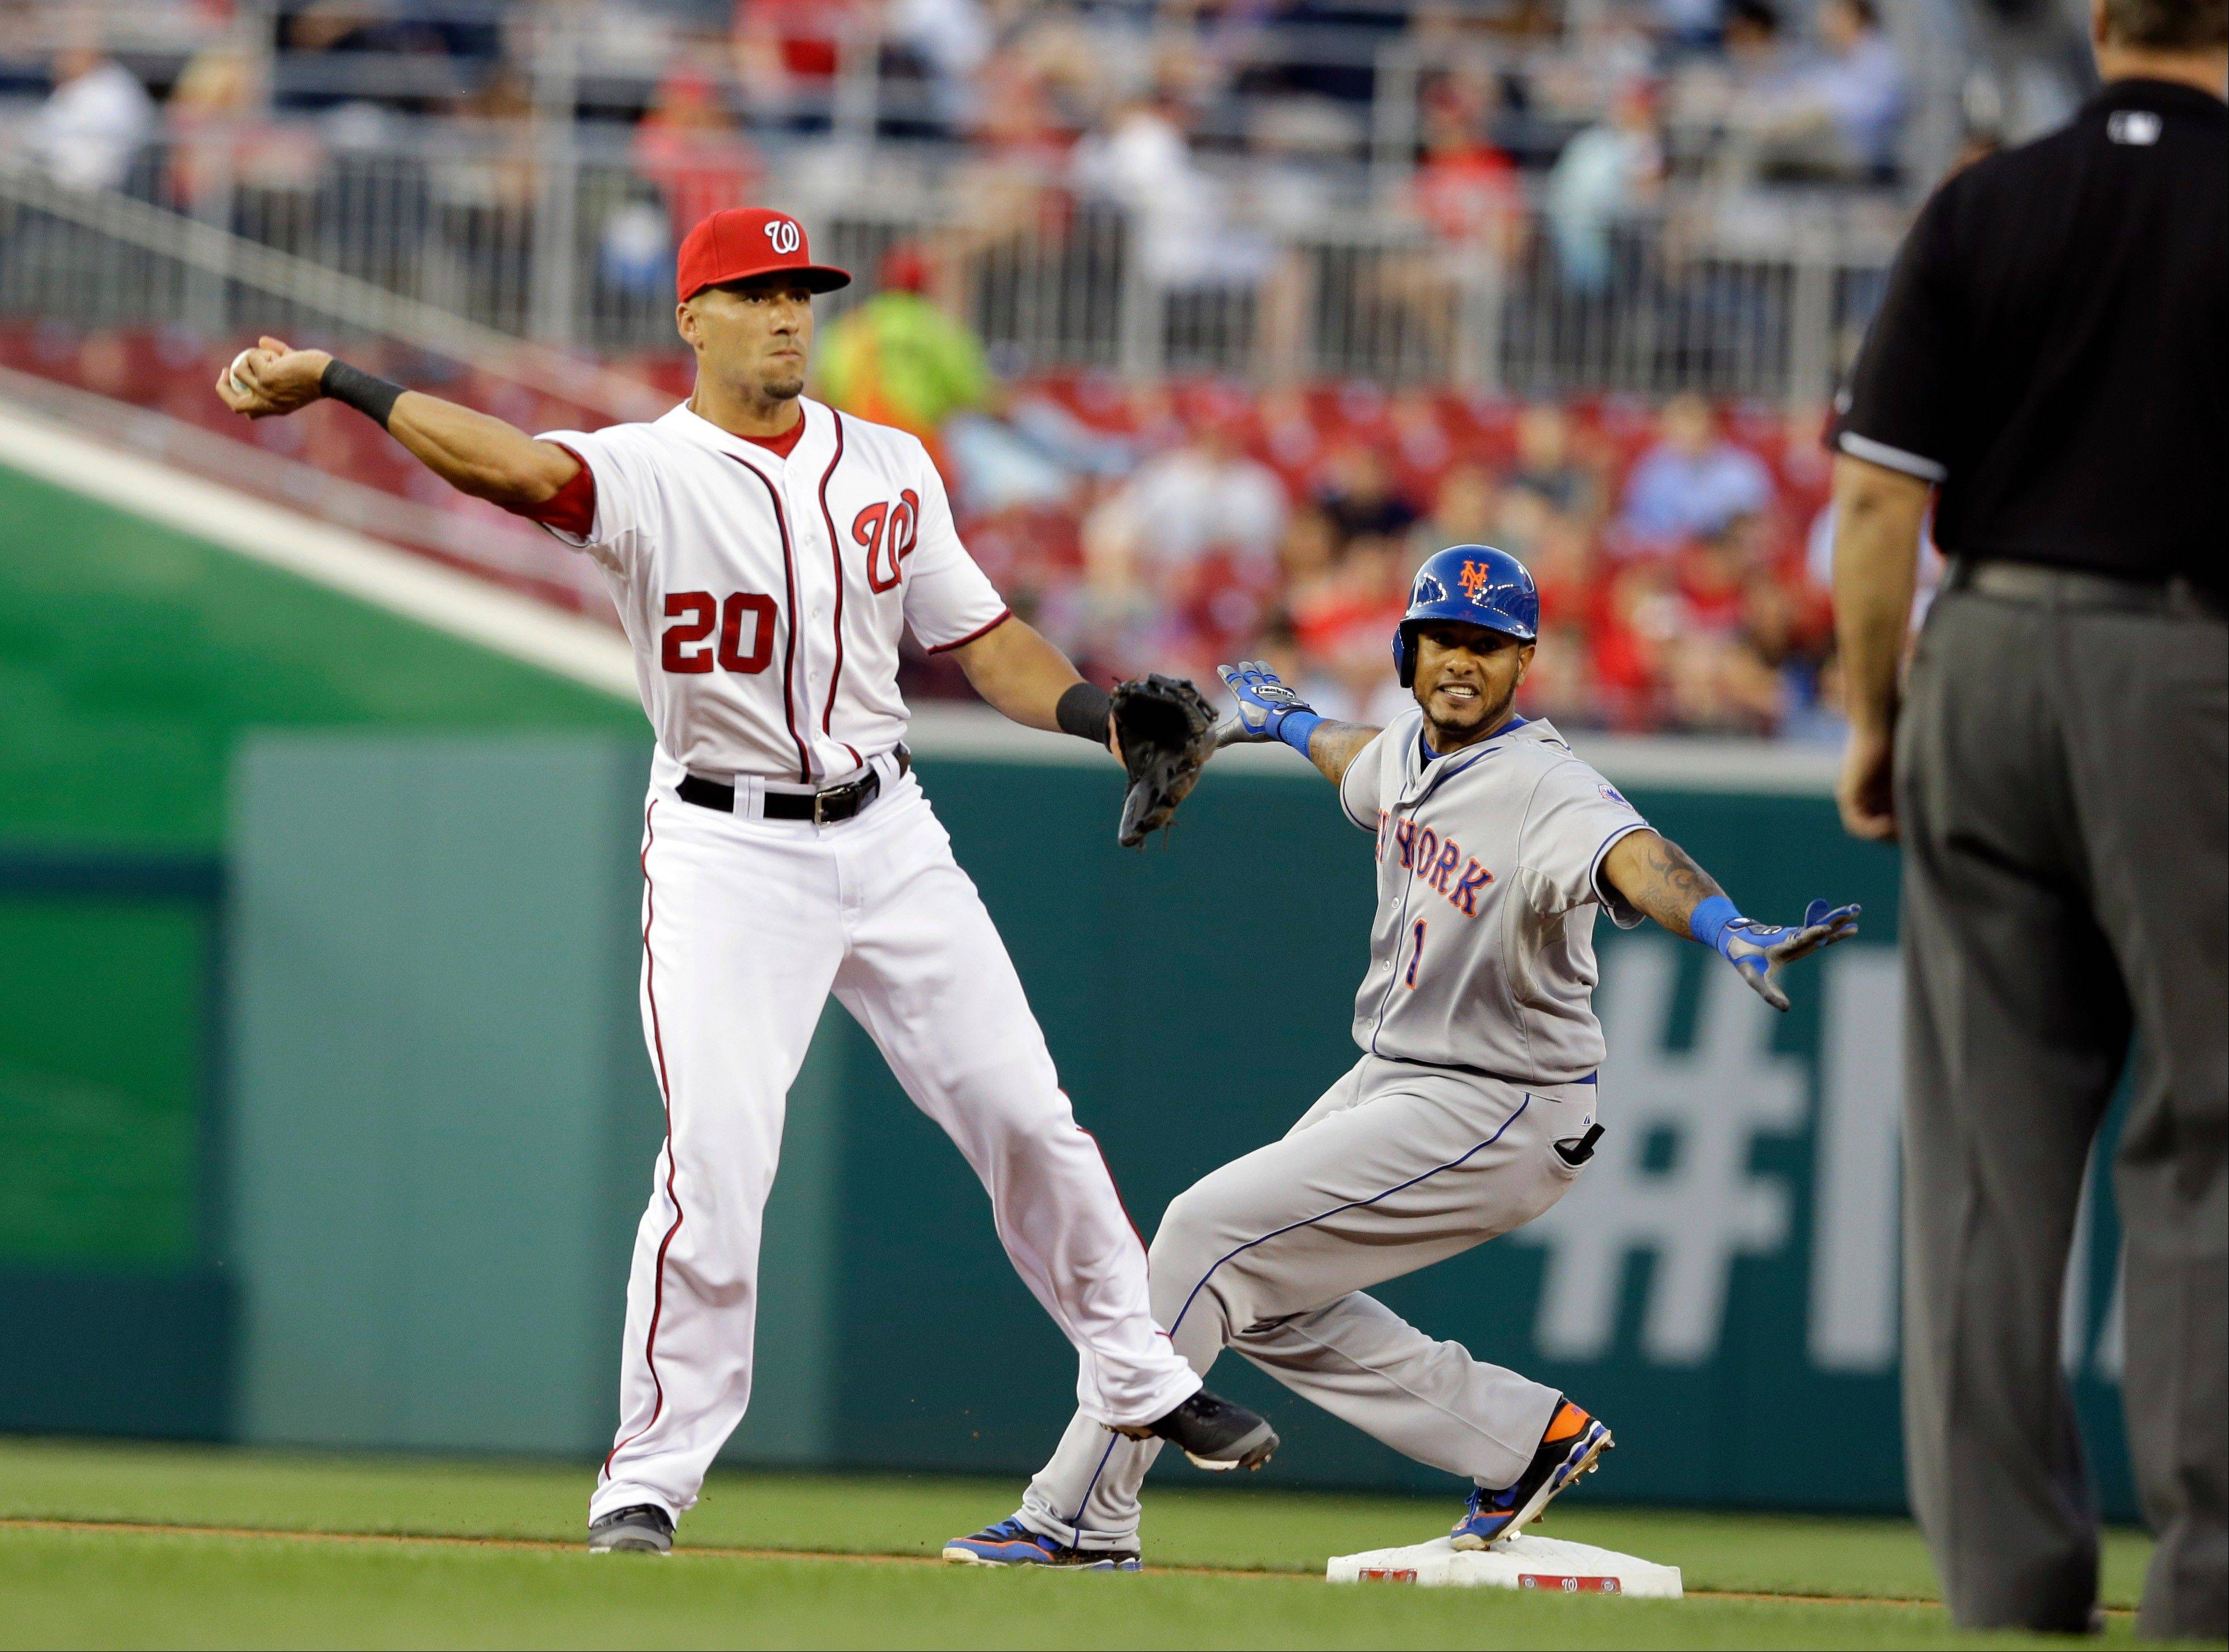 Washington Nationals shortstop Ian Desmond (20) checks his throw to first as New York Mets� Jordany Valdespin (1) is safe at second during the fifth inning of a baseball game at Nationals Park Tuesday in Washington.